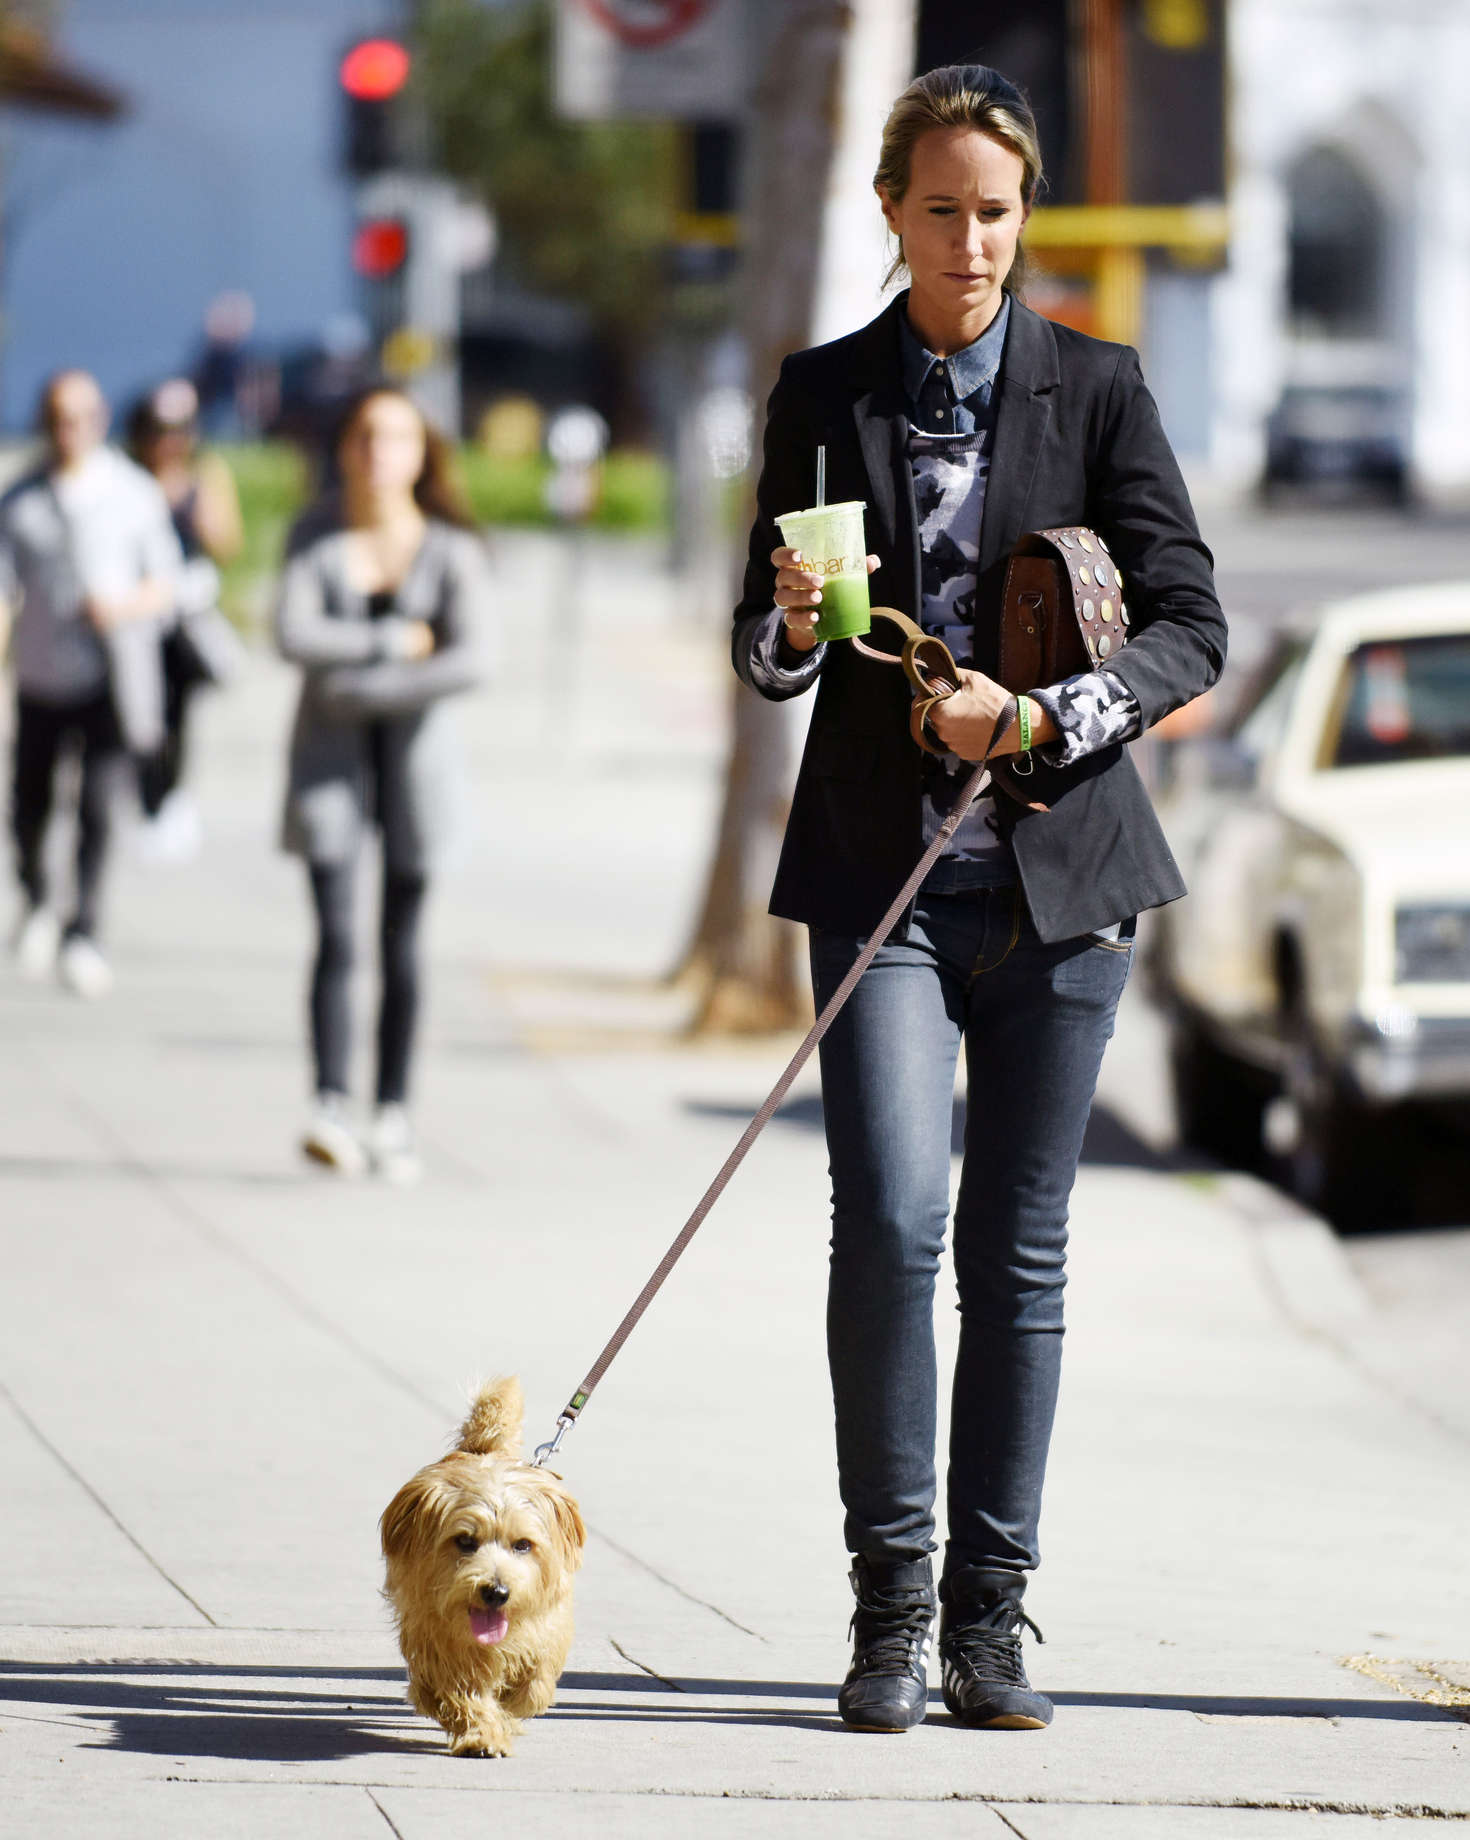 the lady with the dog by The lady with the dog essays are academic essays for citation these papers were written primarily by students and provide critical analysis of the lady with the dog by anton chekhov.